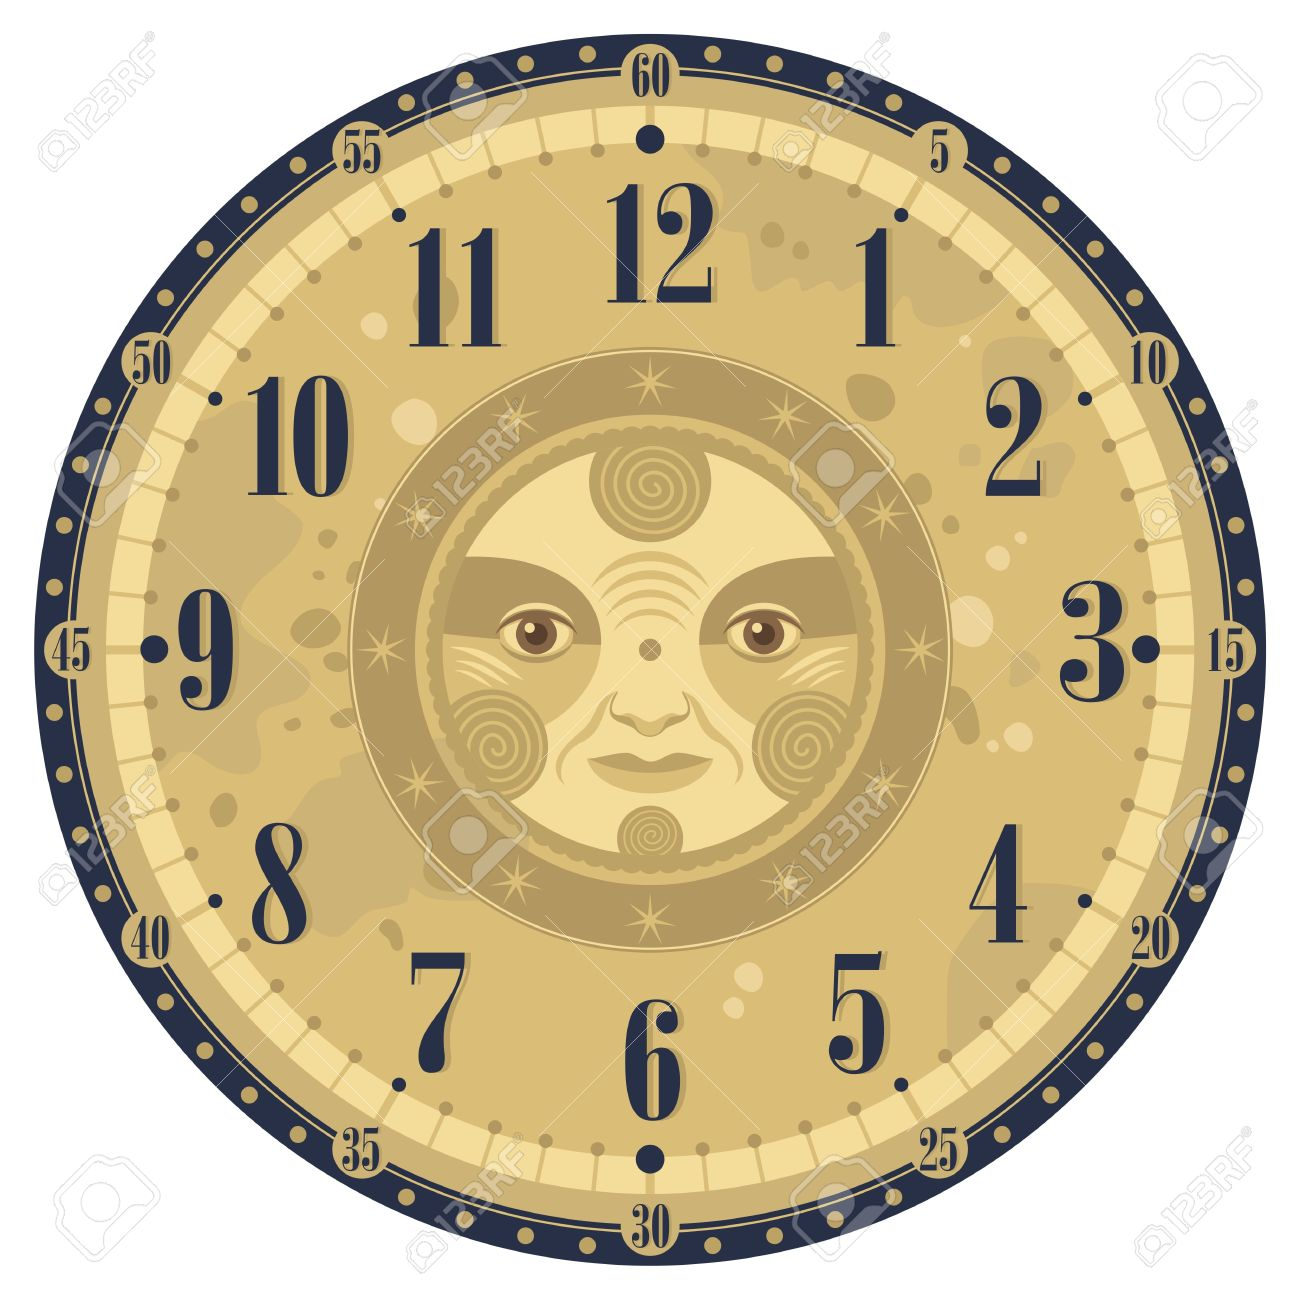 Vintage Clock Face Template With Decorative Sun Royalty Free ...